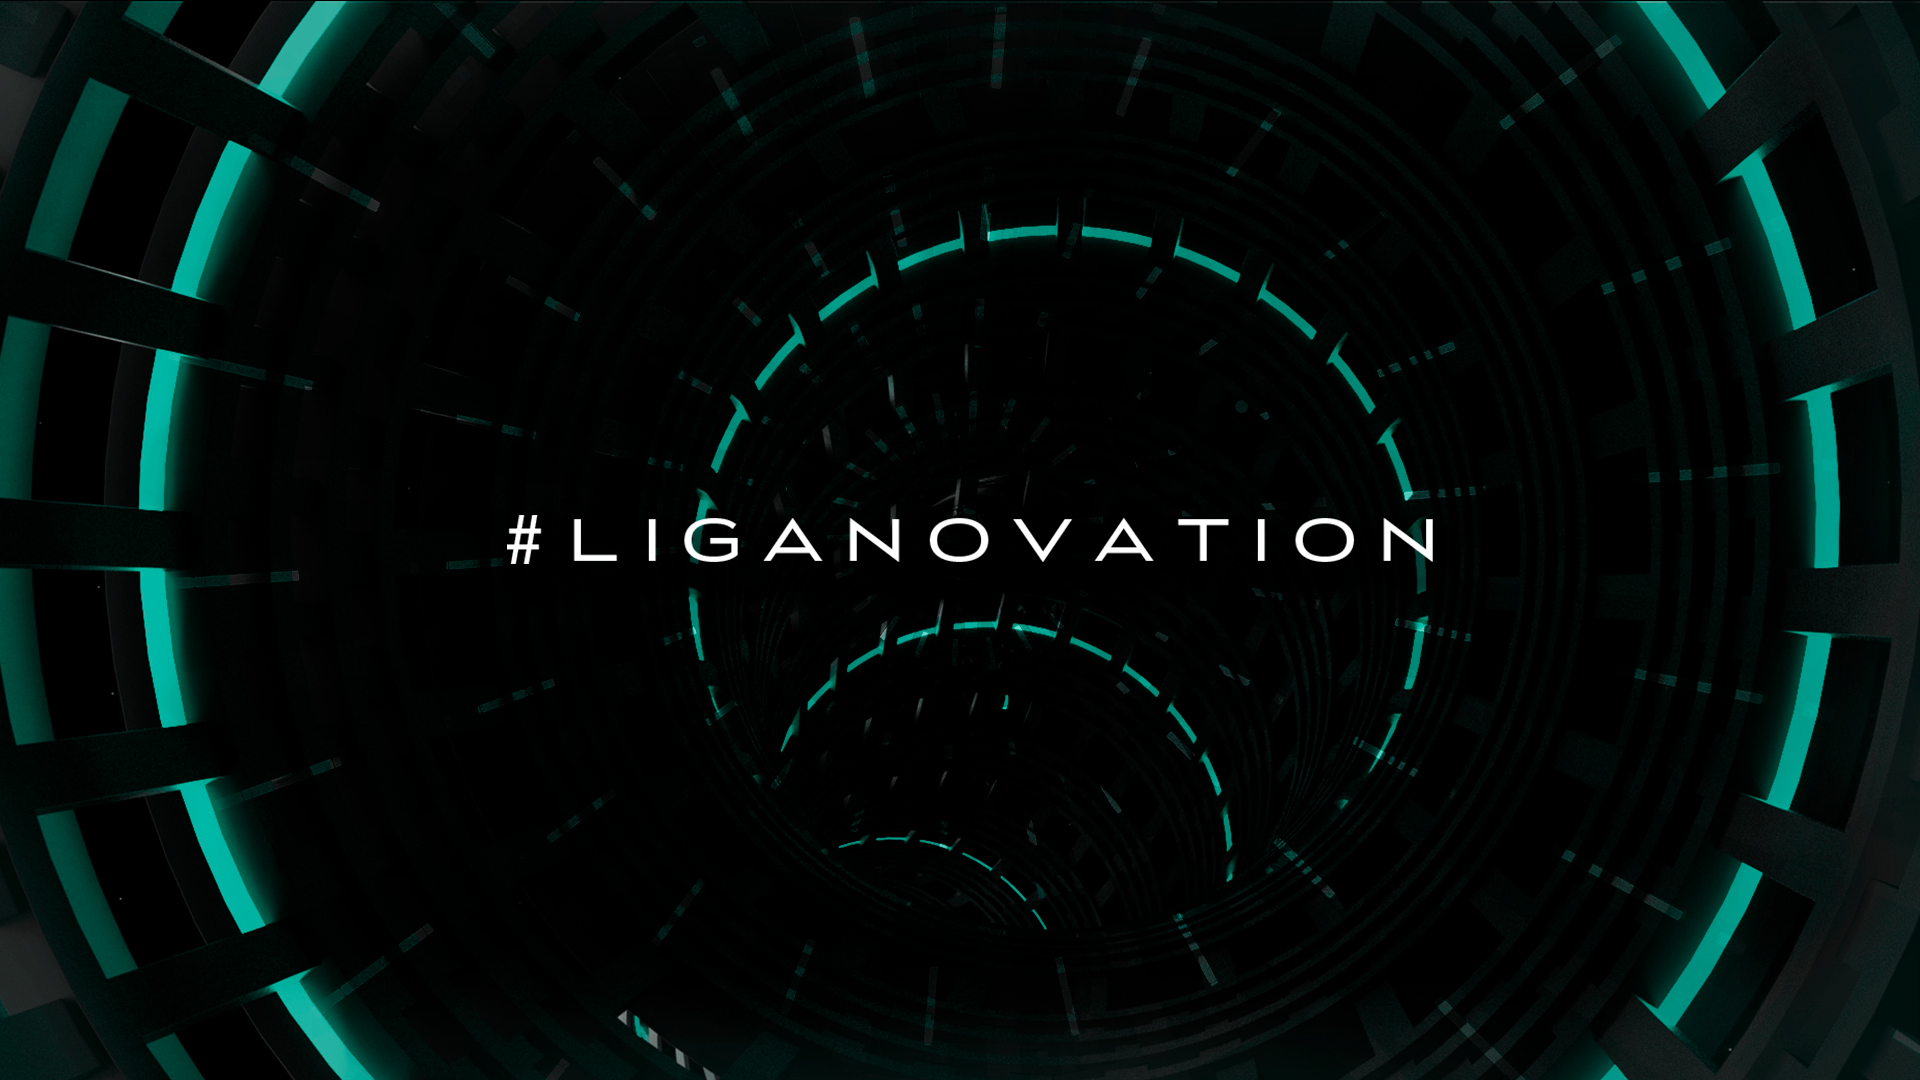 LIGANOVA | LIGANOVATION